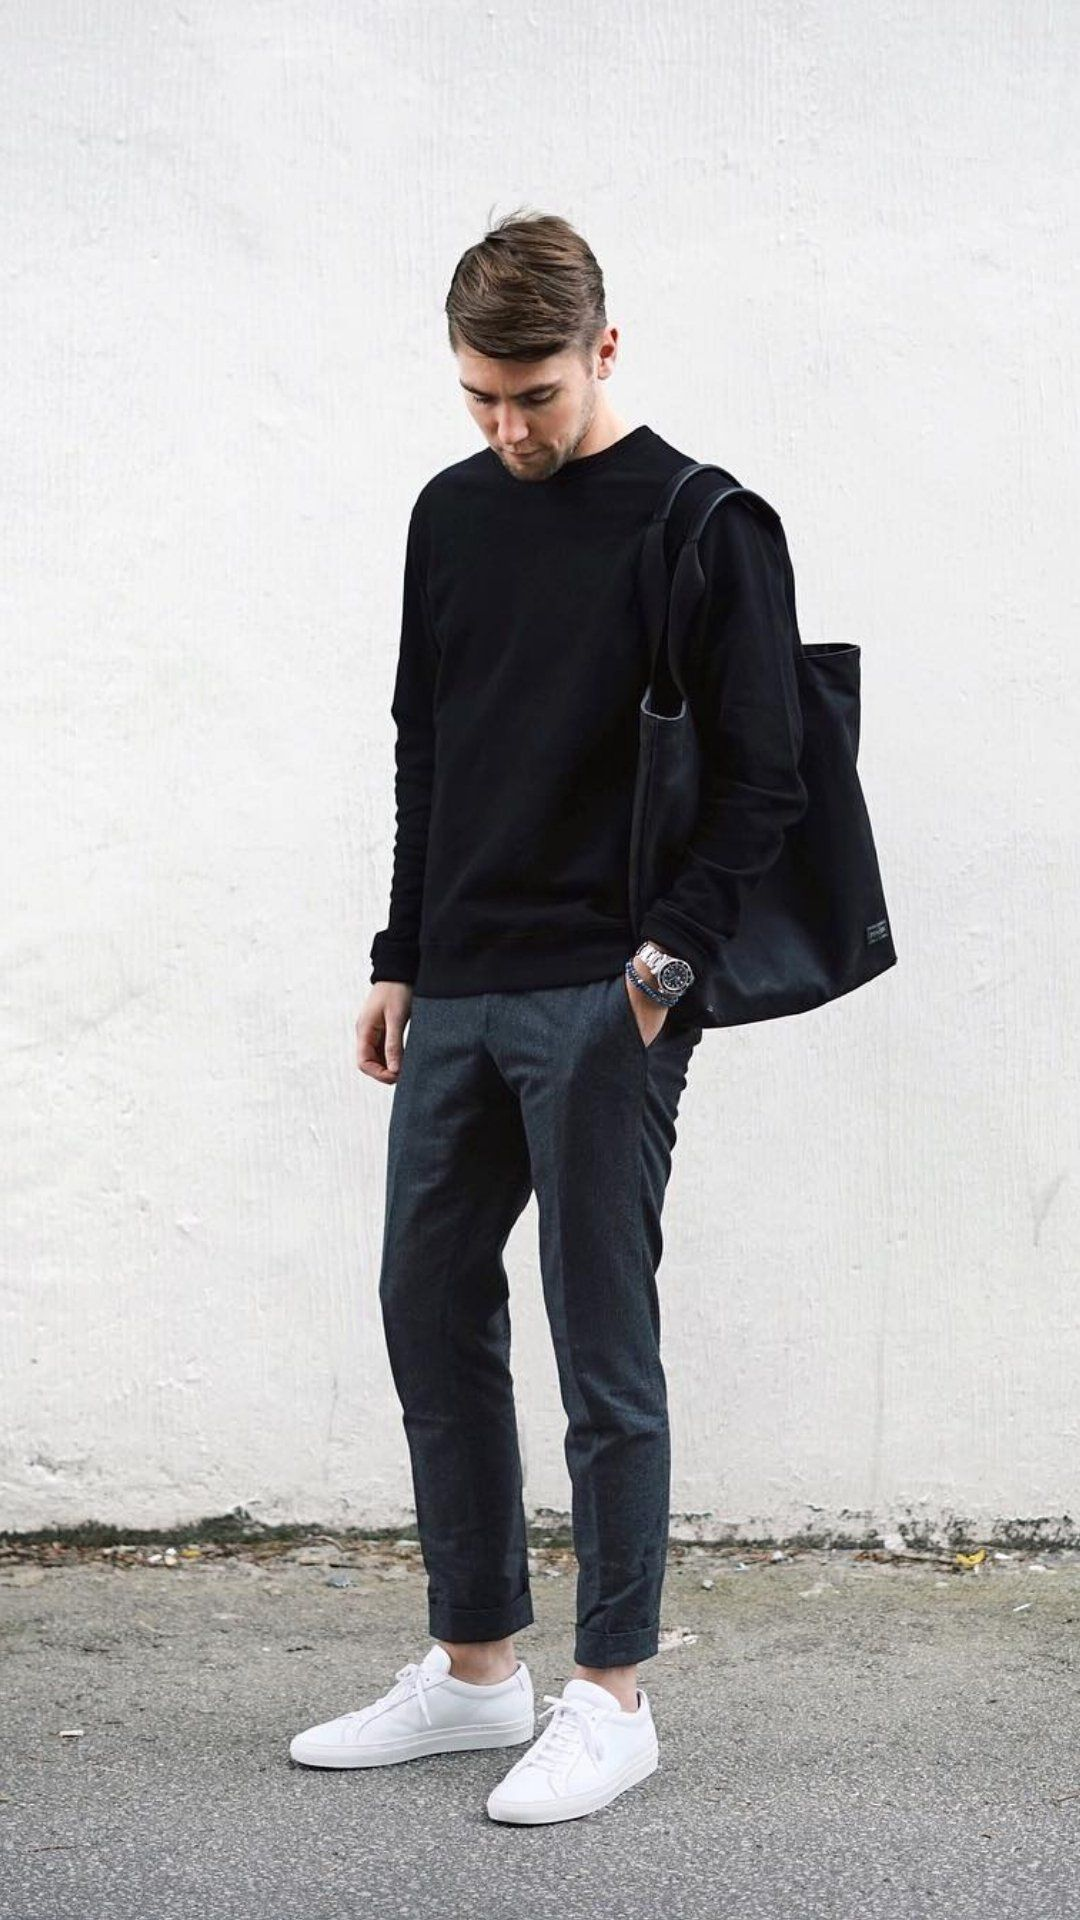 5 Best Outfits For The Minimalist At Heart Minimalist Fashion Men Stylish Mens Fashion Chinos Men Outfit